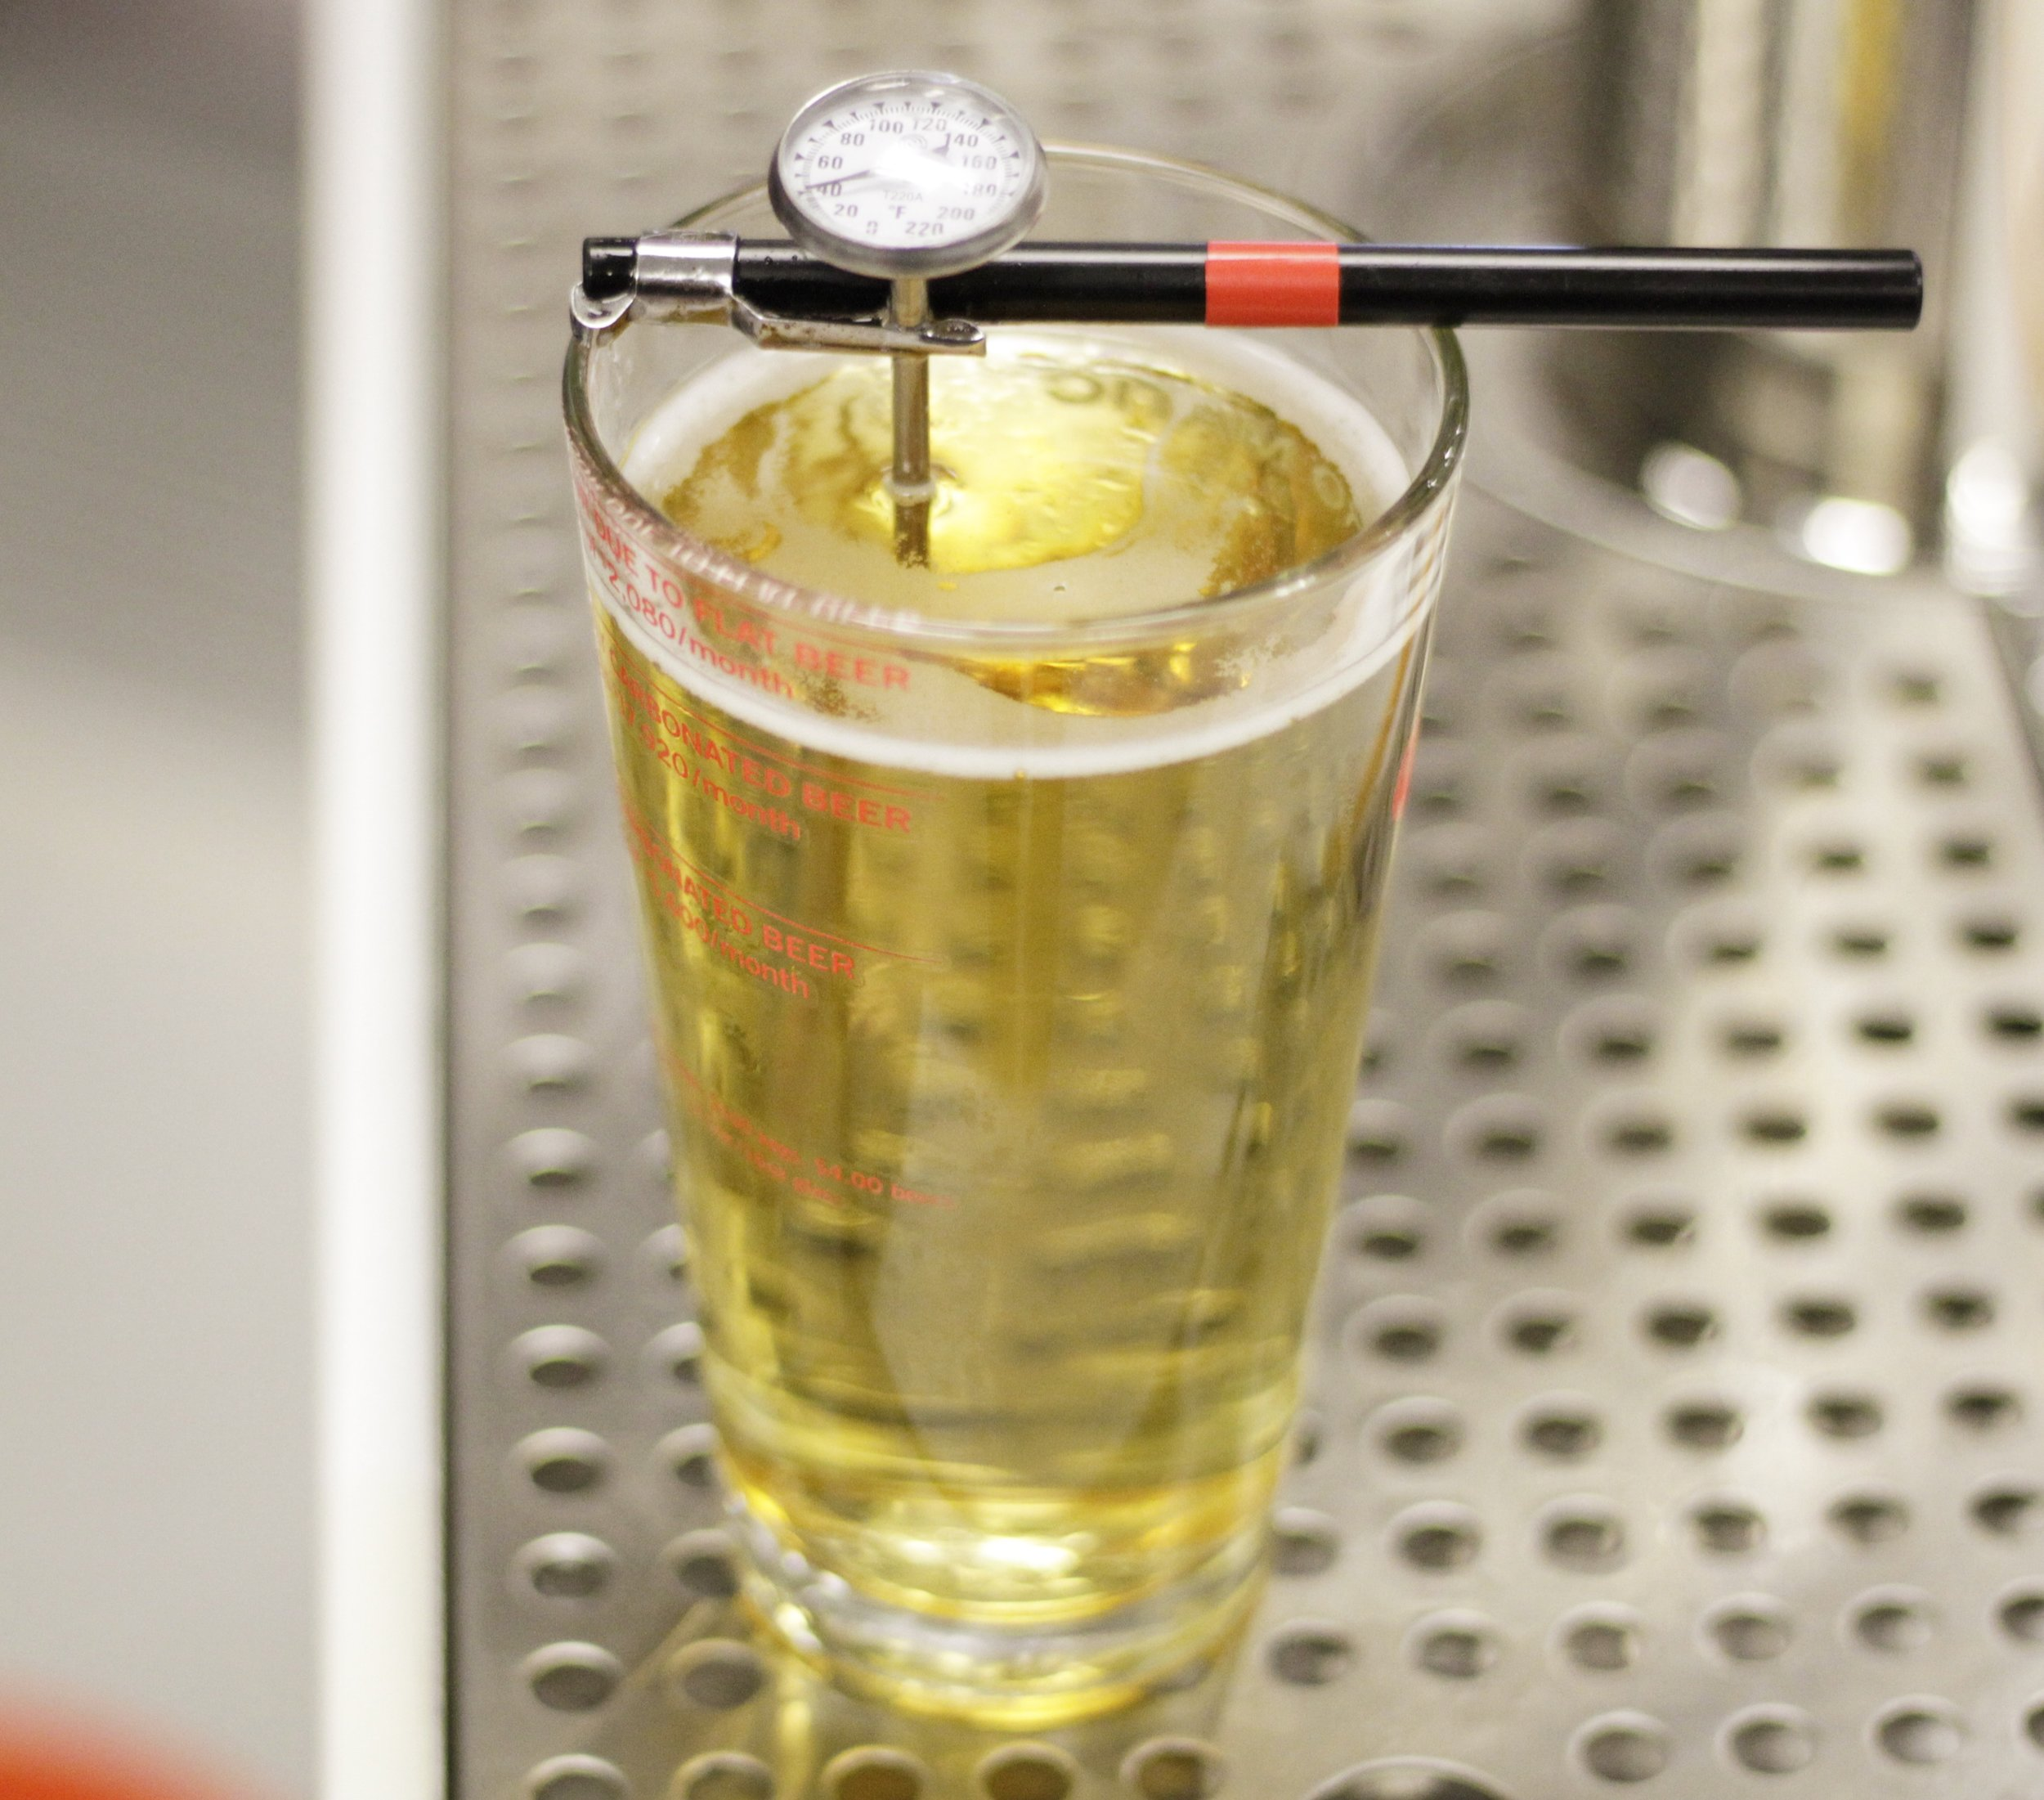 It might look like pee, but a glass of yellow fizz is the perfect guinea pig practicing temperature readings .